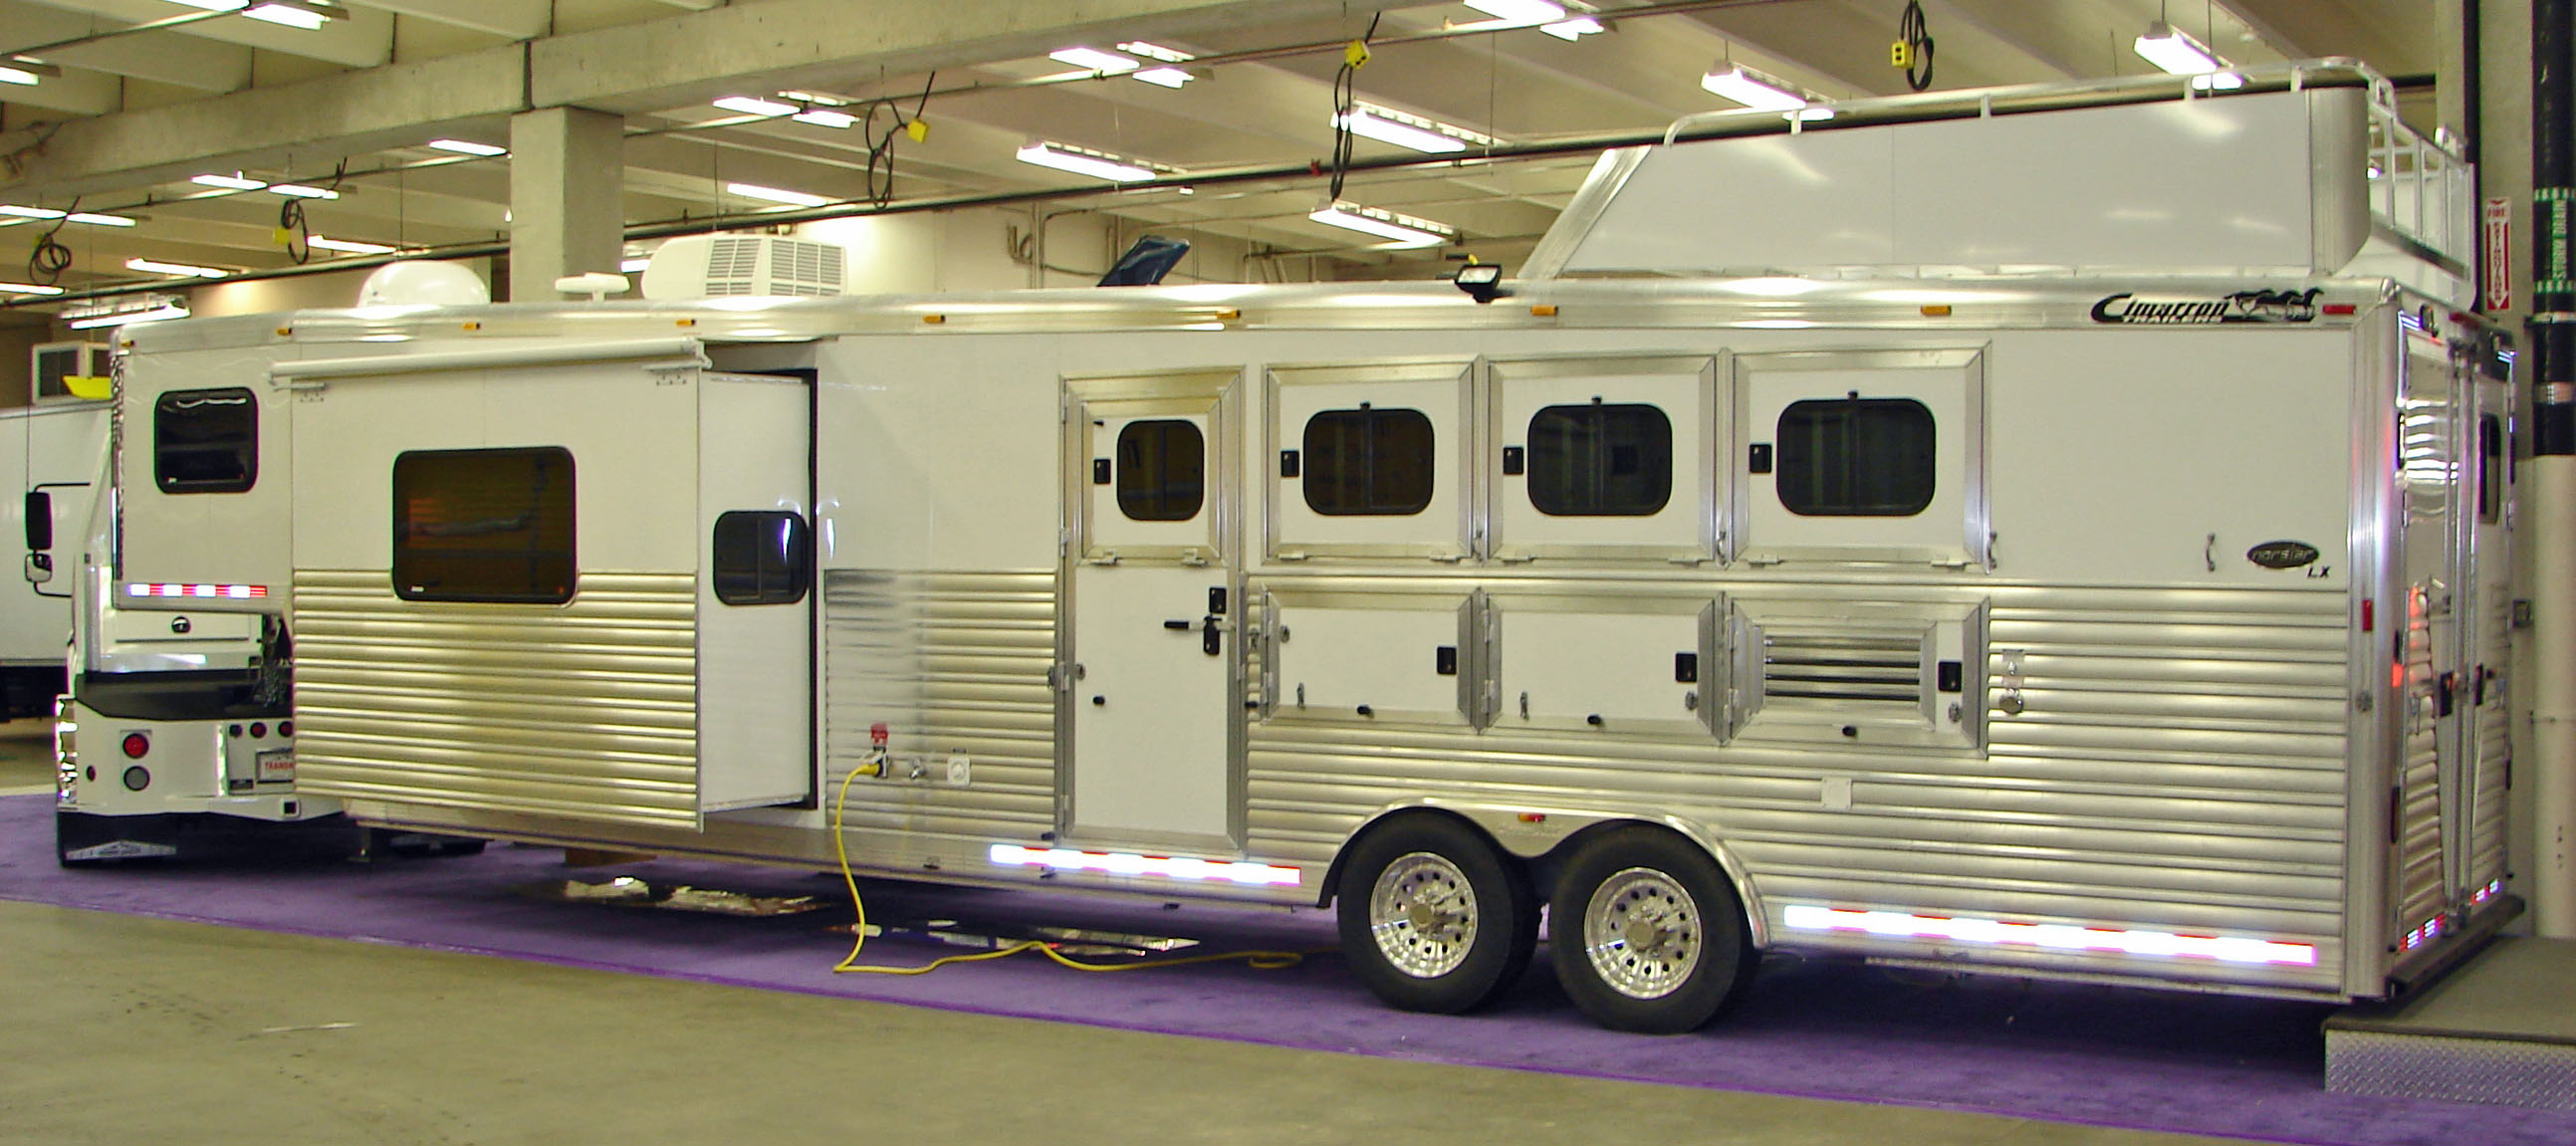 Cimarron Horse Trailer Wedge Design Saves Fuel